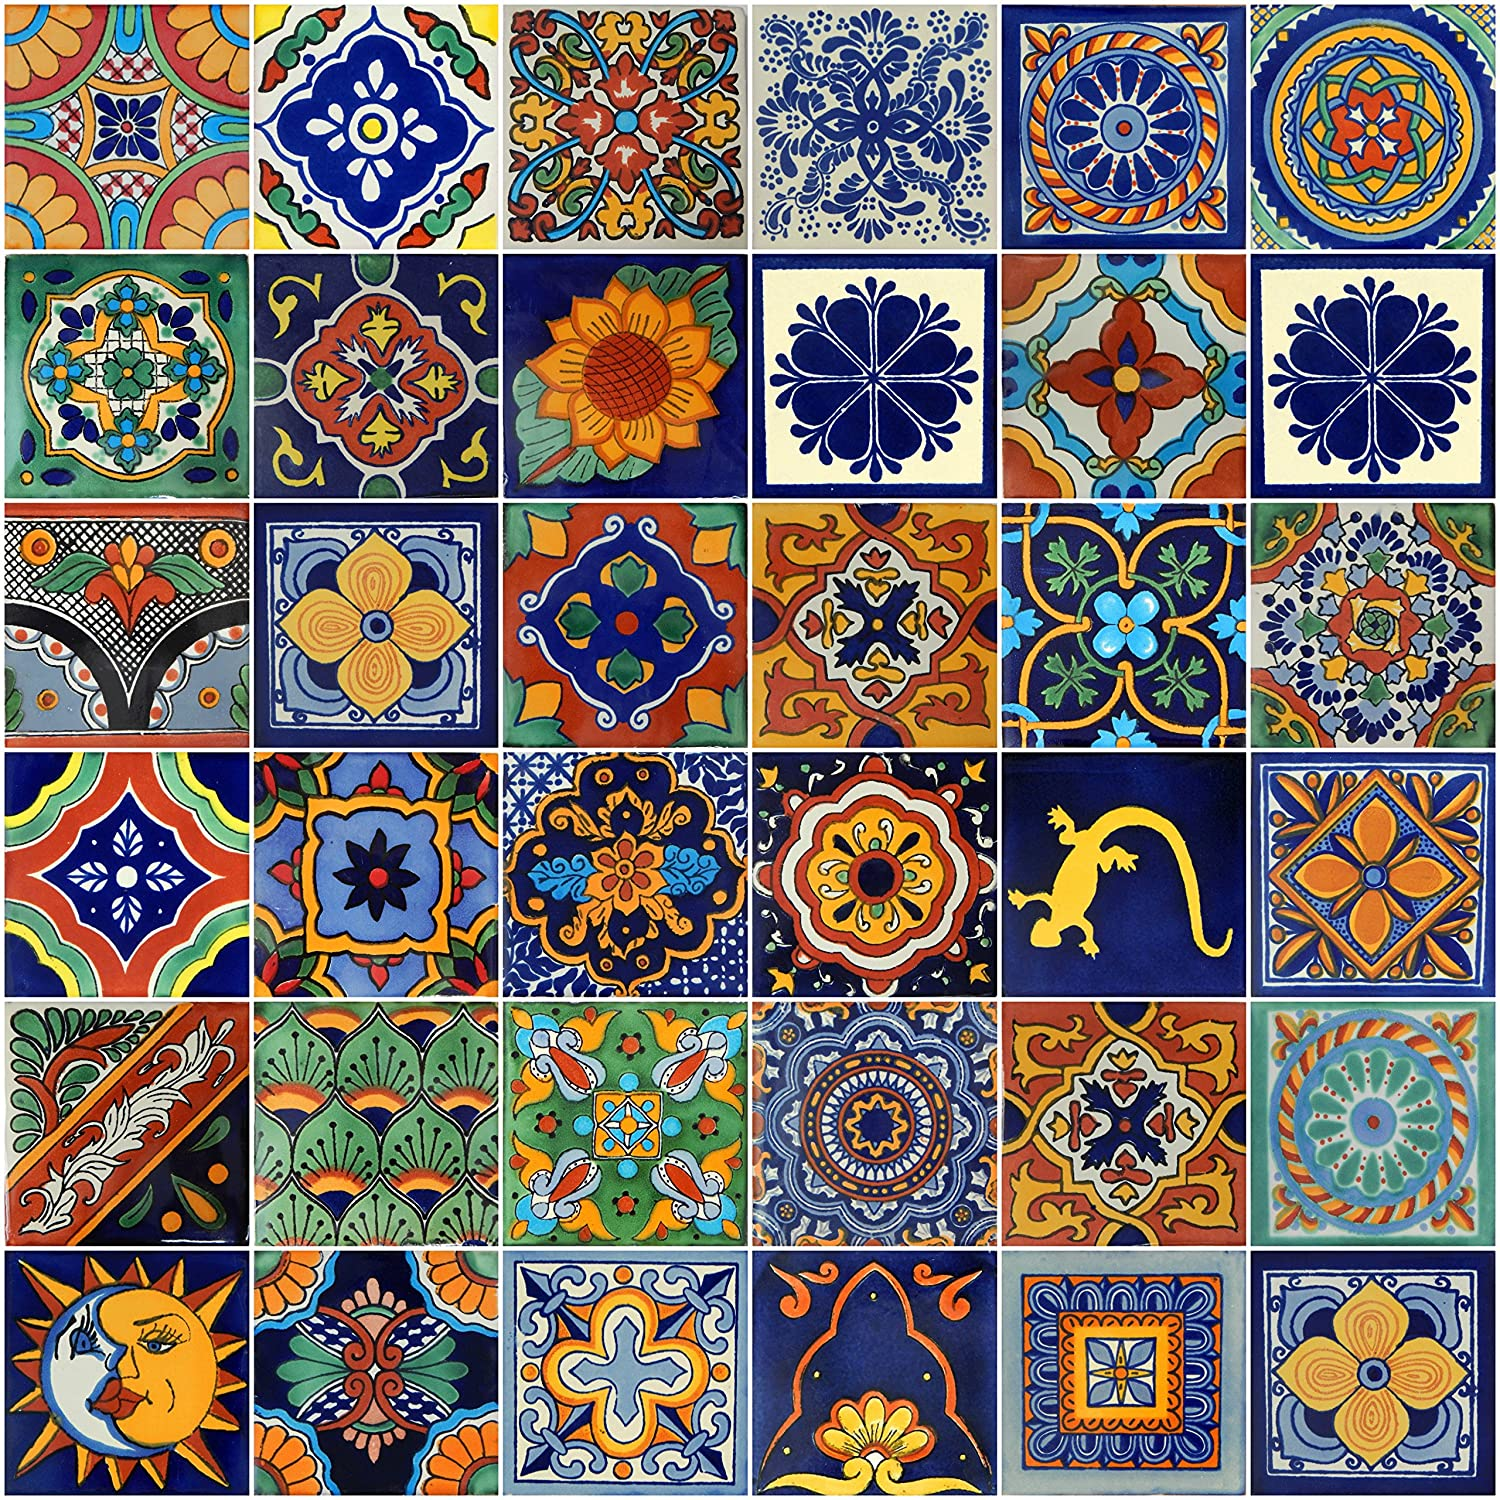 Color y Tradicion Mexican Tiles 4x4 Handpainted Hundred Pieces Assorted Designs